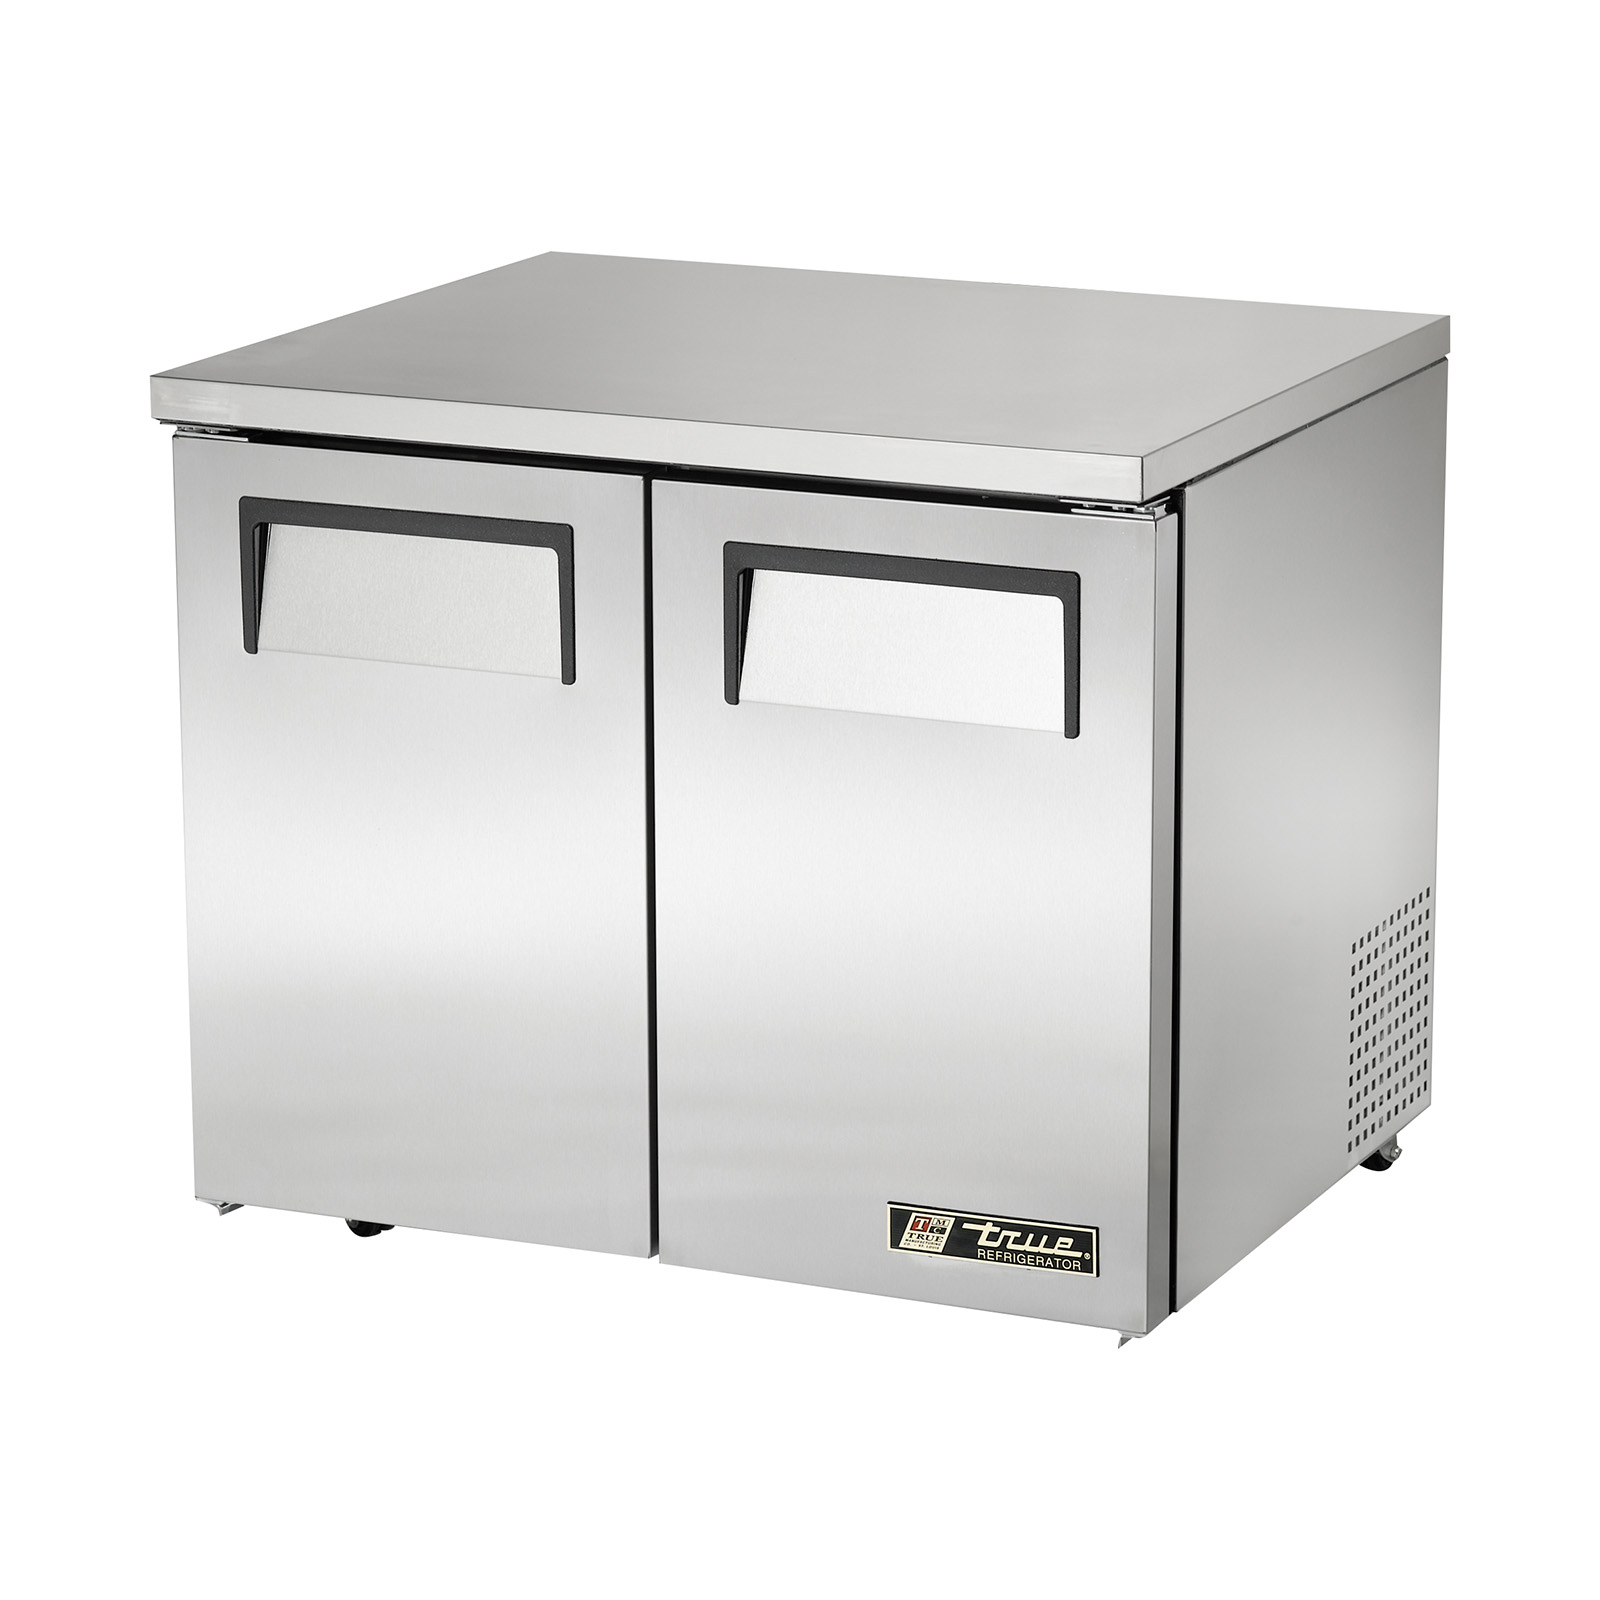 TUC-36-LP True - Low Profile Undercounter Refrigerator 33-38? F